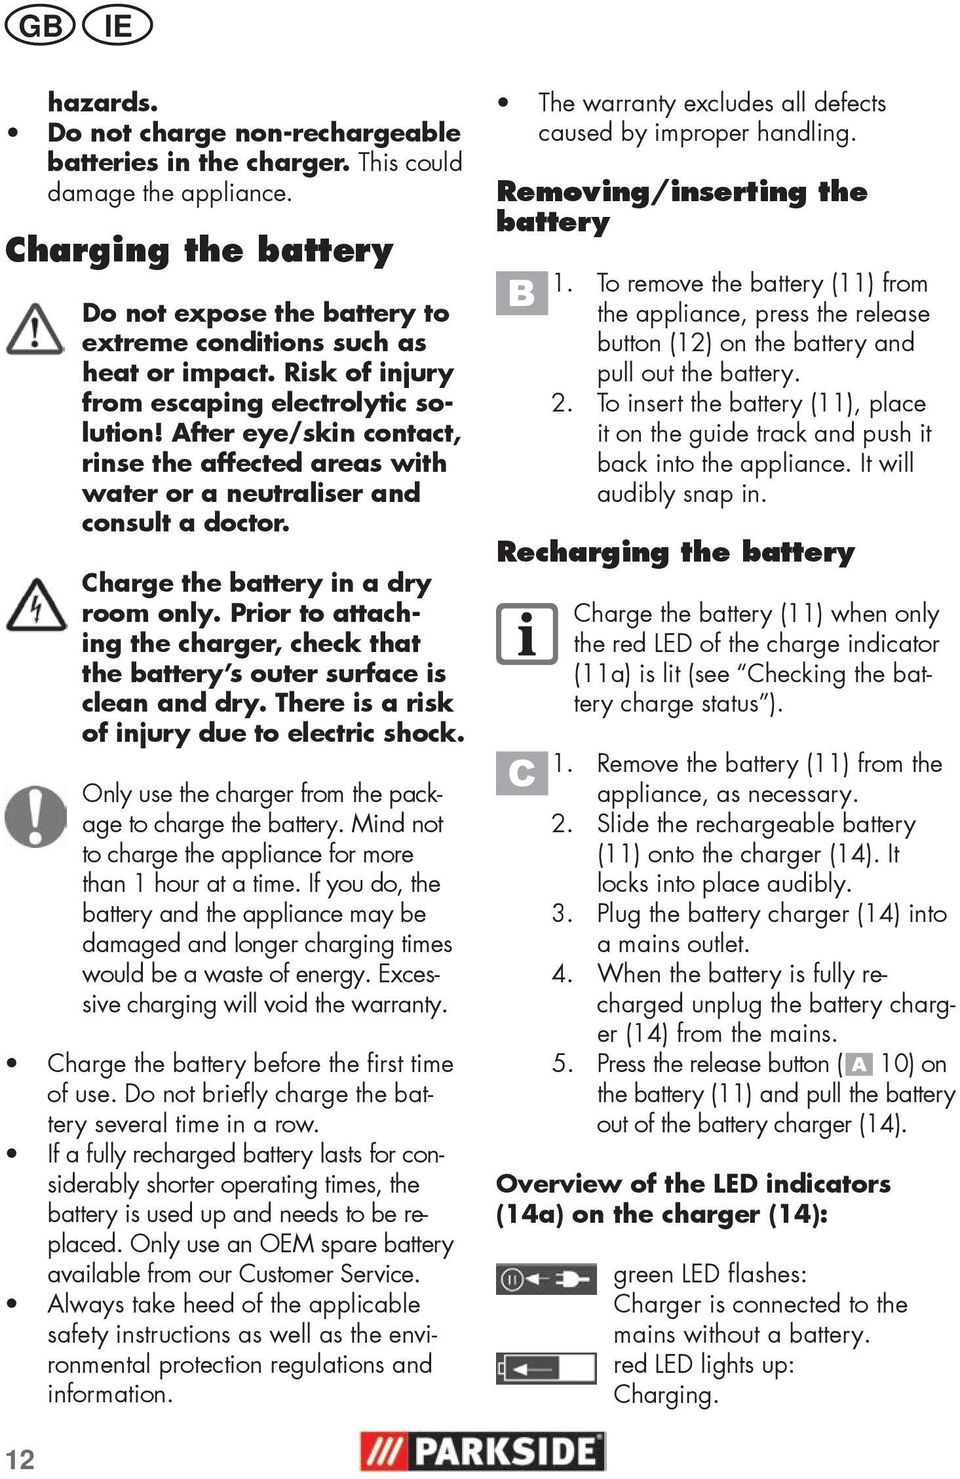 Prior to attaching the charger, check that the battery s outer surface is clean and dry. There is a risk of injury due to electric shock. Only use the charger from the package to charge the battery.